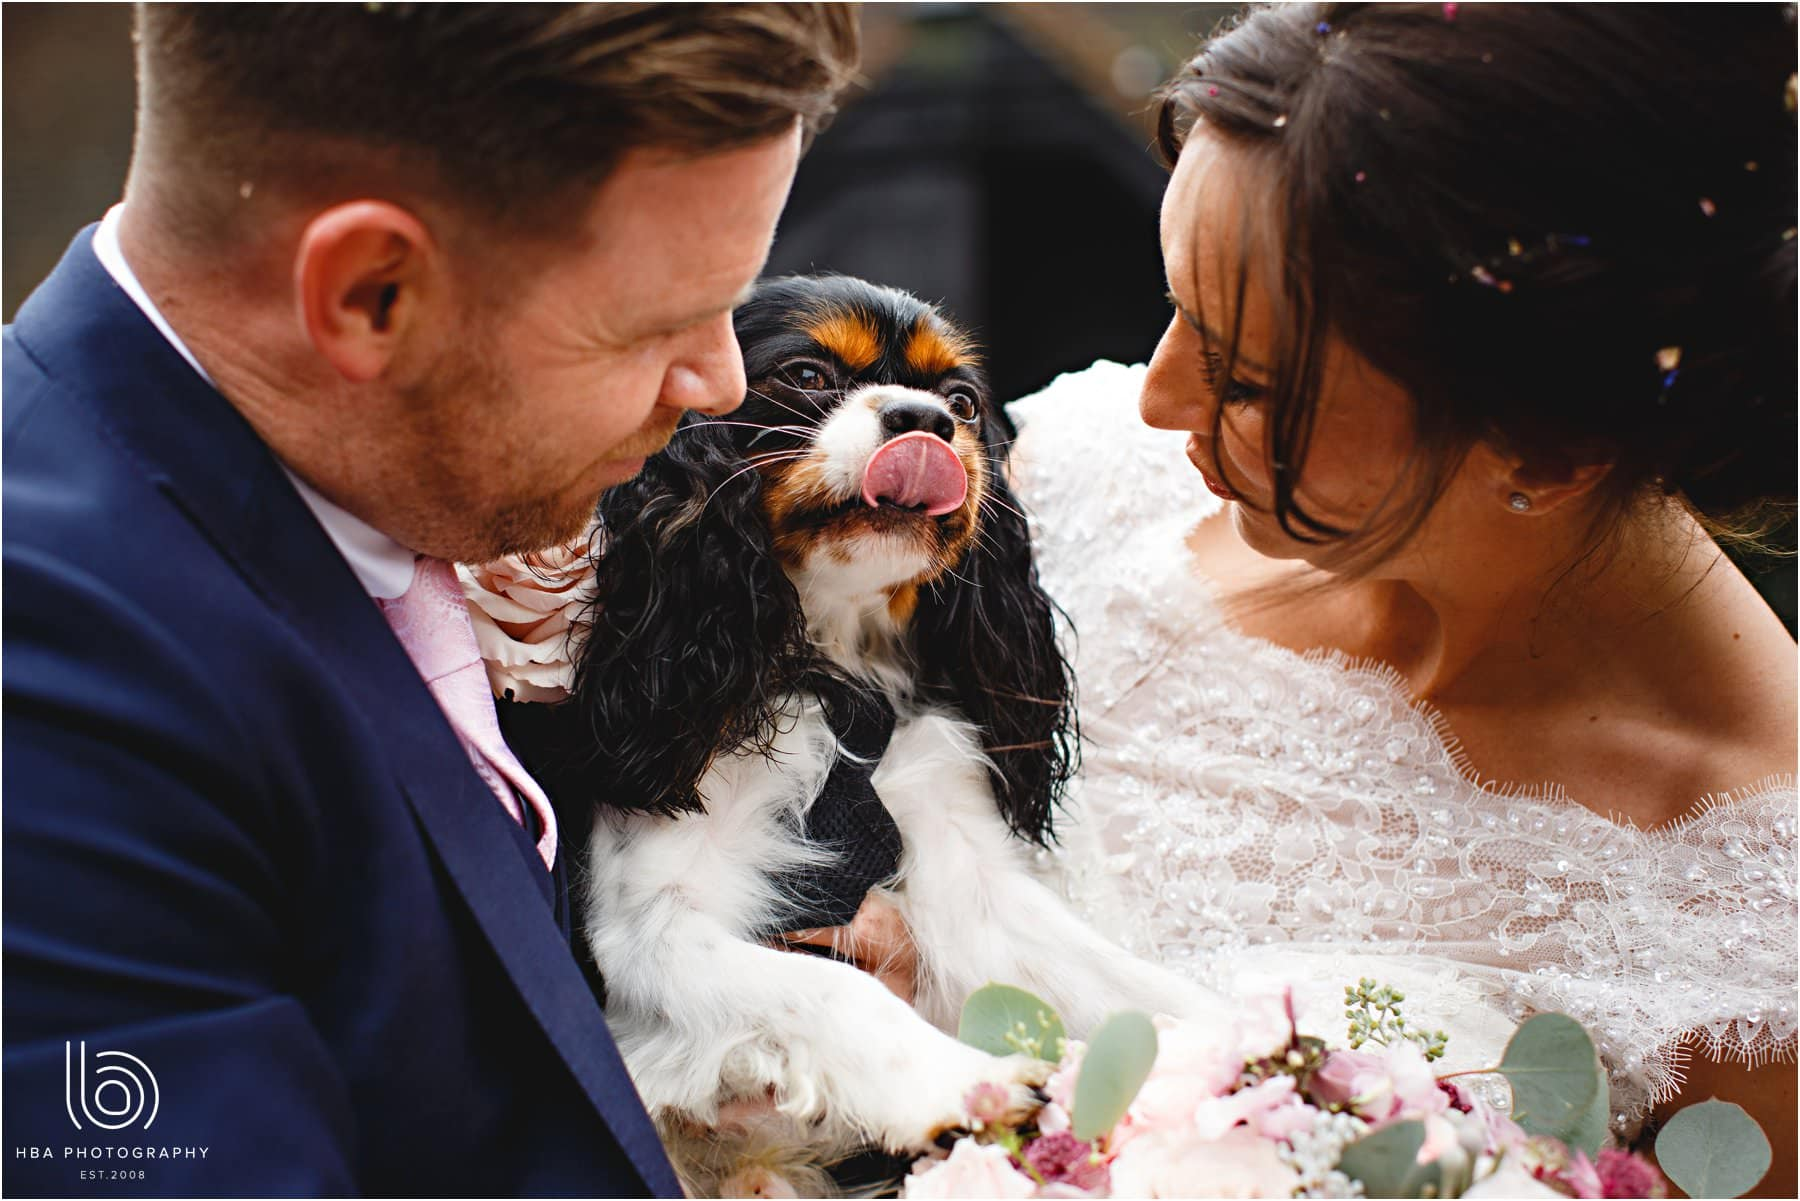 the bride and groom with their dog